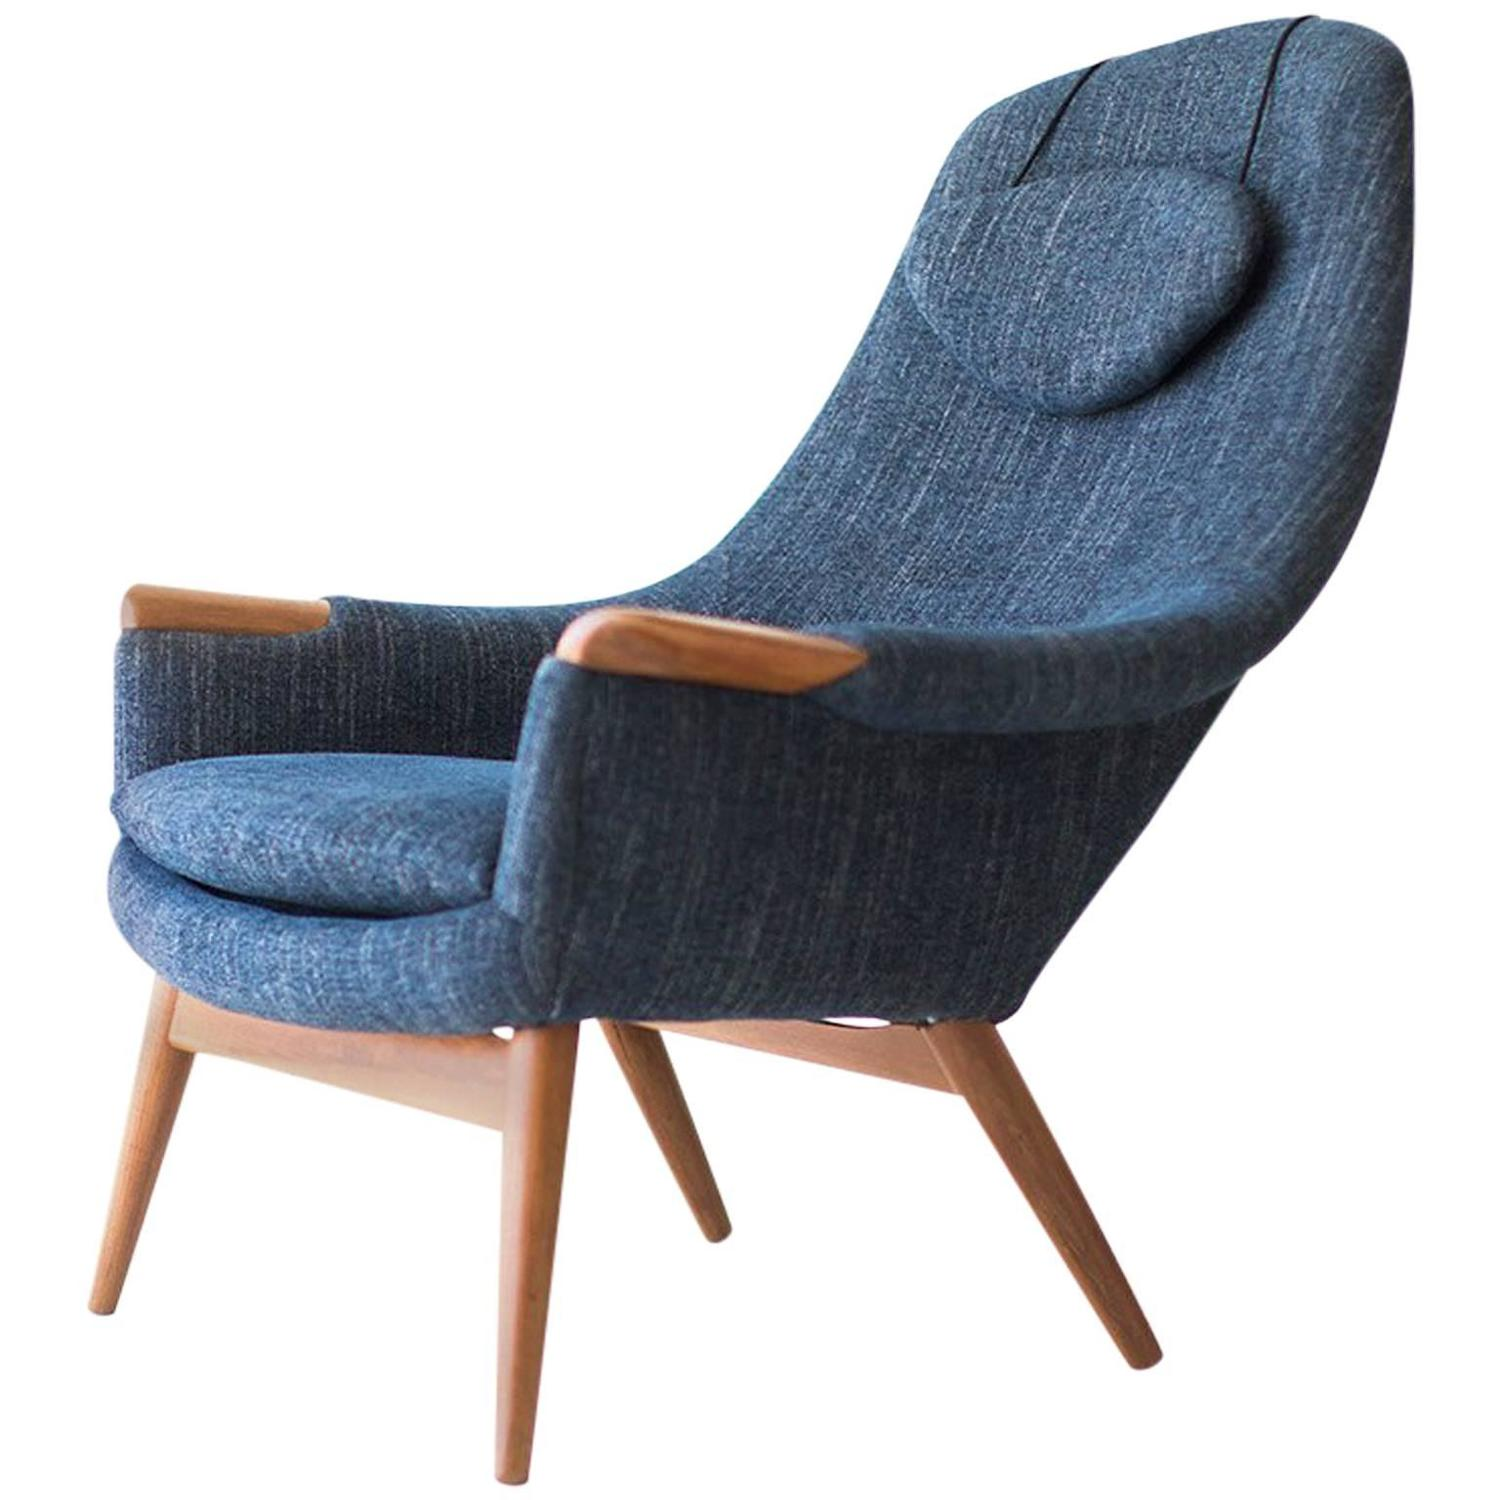 Norwegian Furniture 729 For Sale at 1stdibs